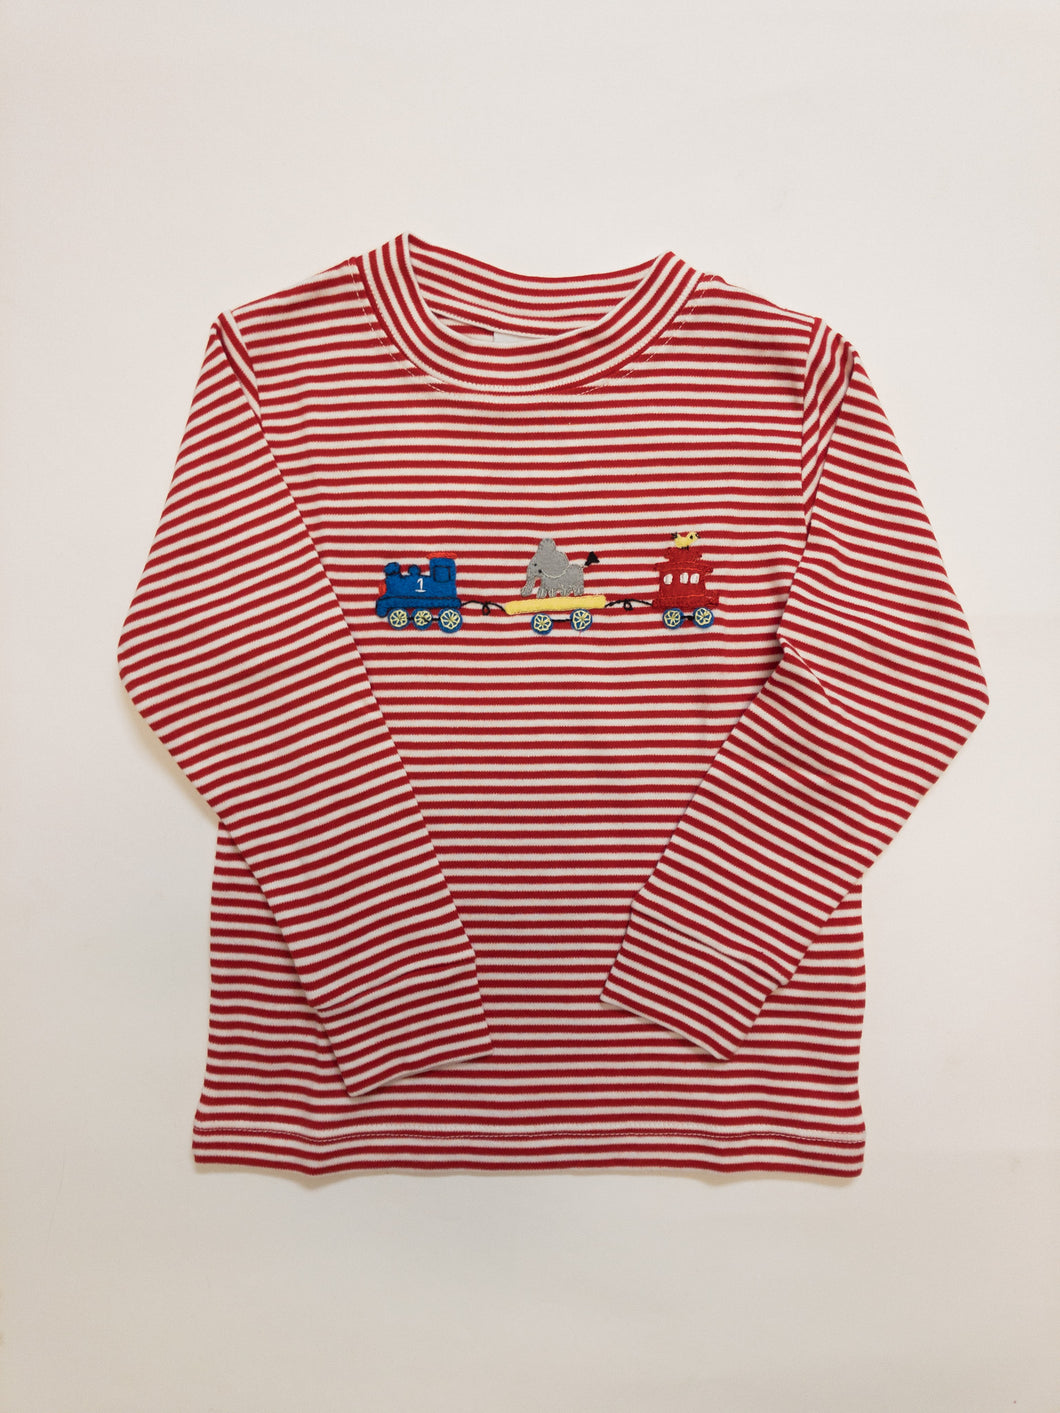 Animal Train Crew Neck Shirt - Posh Tots Children's Boutique